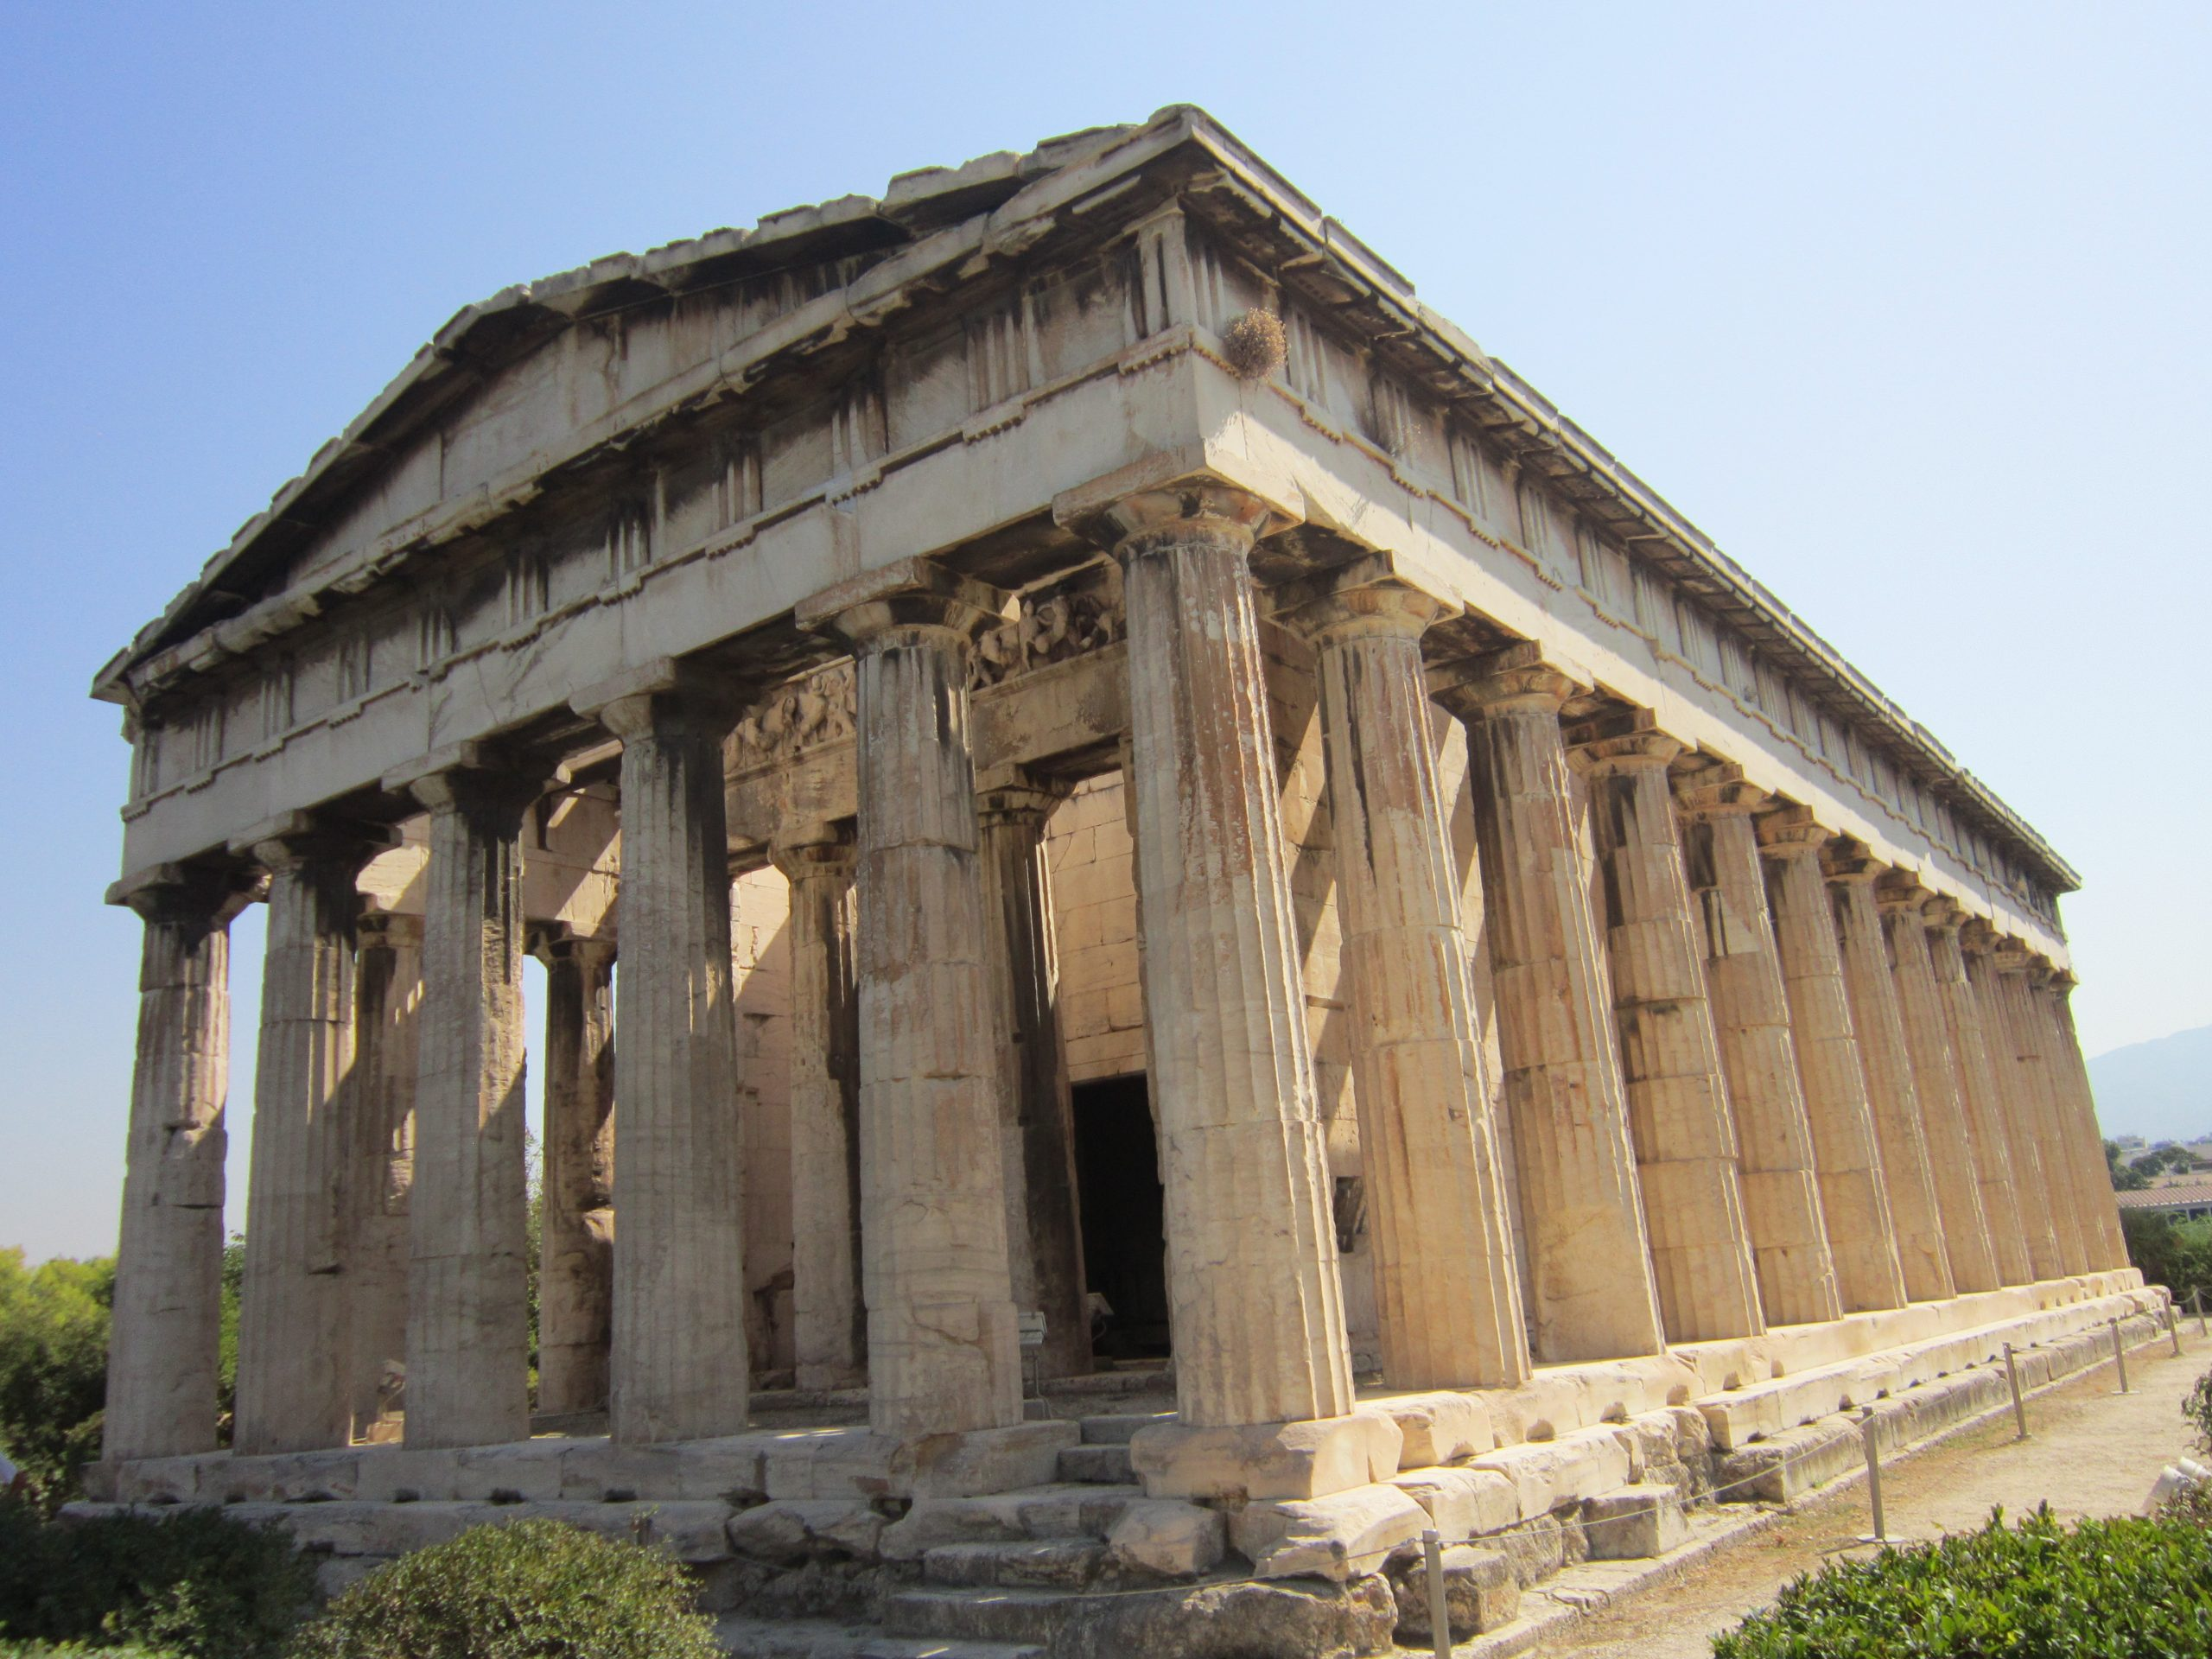 Temple of Hephaestus, showing how it is a long building with many pillars holding up a roof.